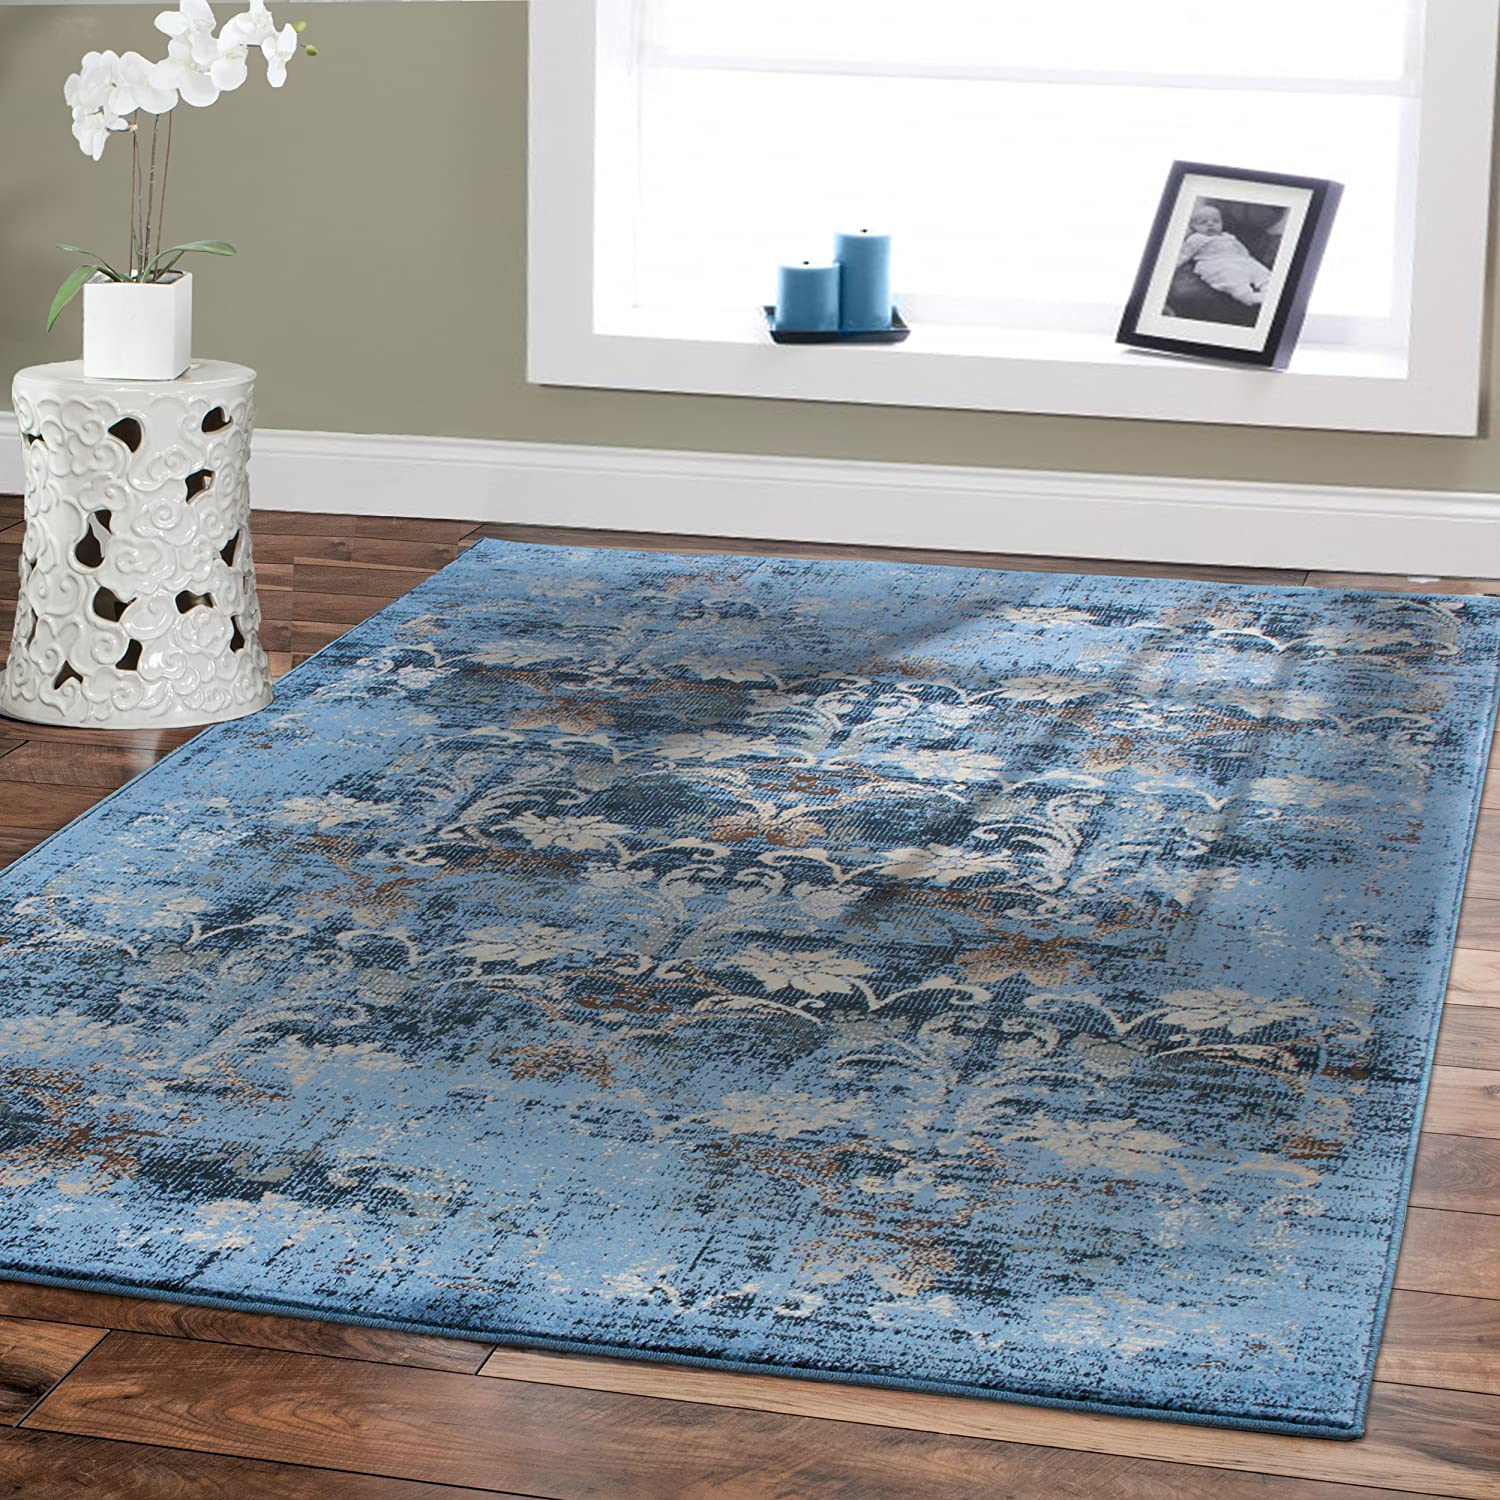 Amazon Premium Soft 8x11 Modern Rugs For Dining Room Blue Beige Brown Ivory Navy Floral Carpet Fashion 8x10 Bedroom Liviong